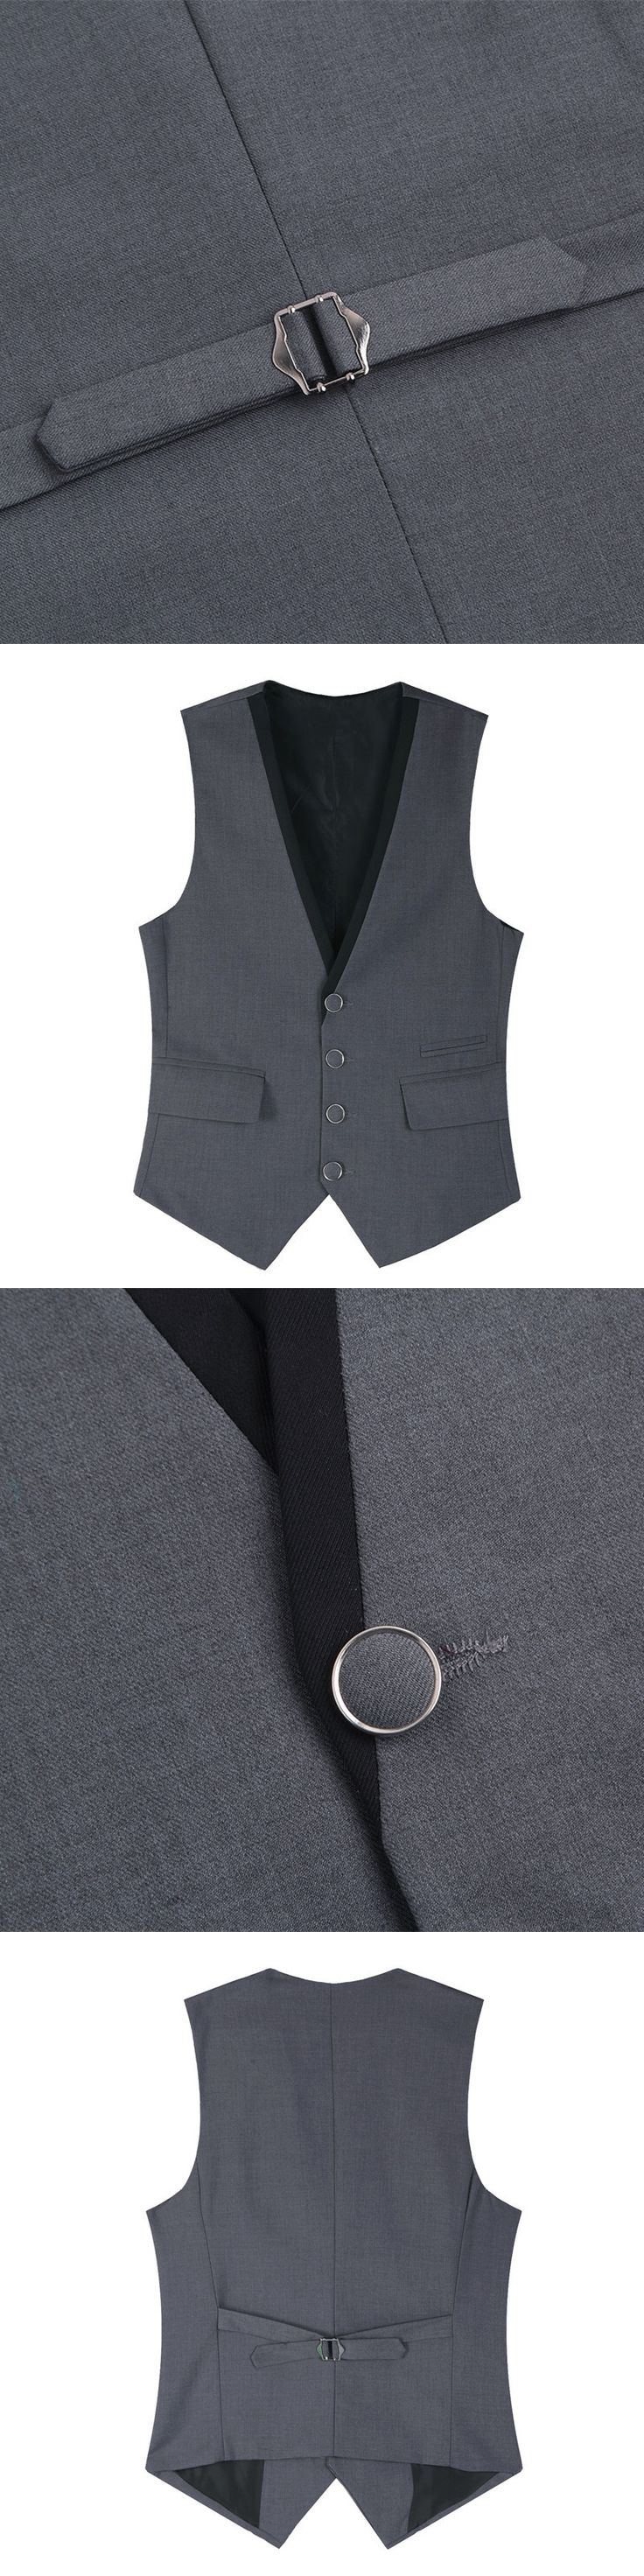 Men Suit Vest Black Grey 4 Buttons V Collar Classic Dress Slim Fit Vests Male Sleeveless Brand Mens Formal Wedding Waistcoat 3XL